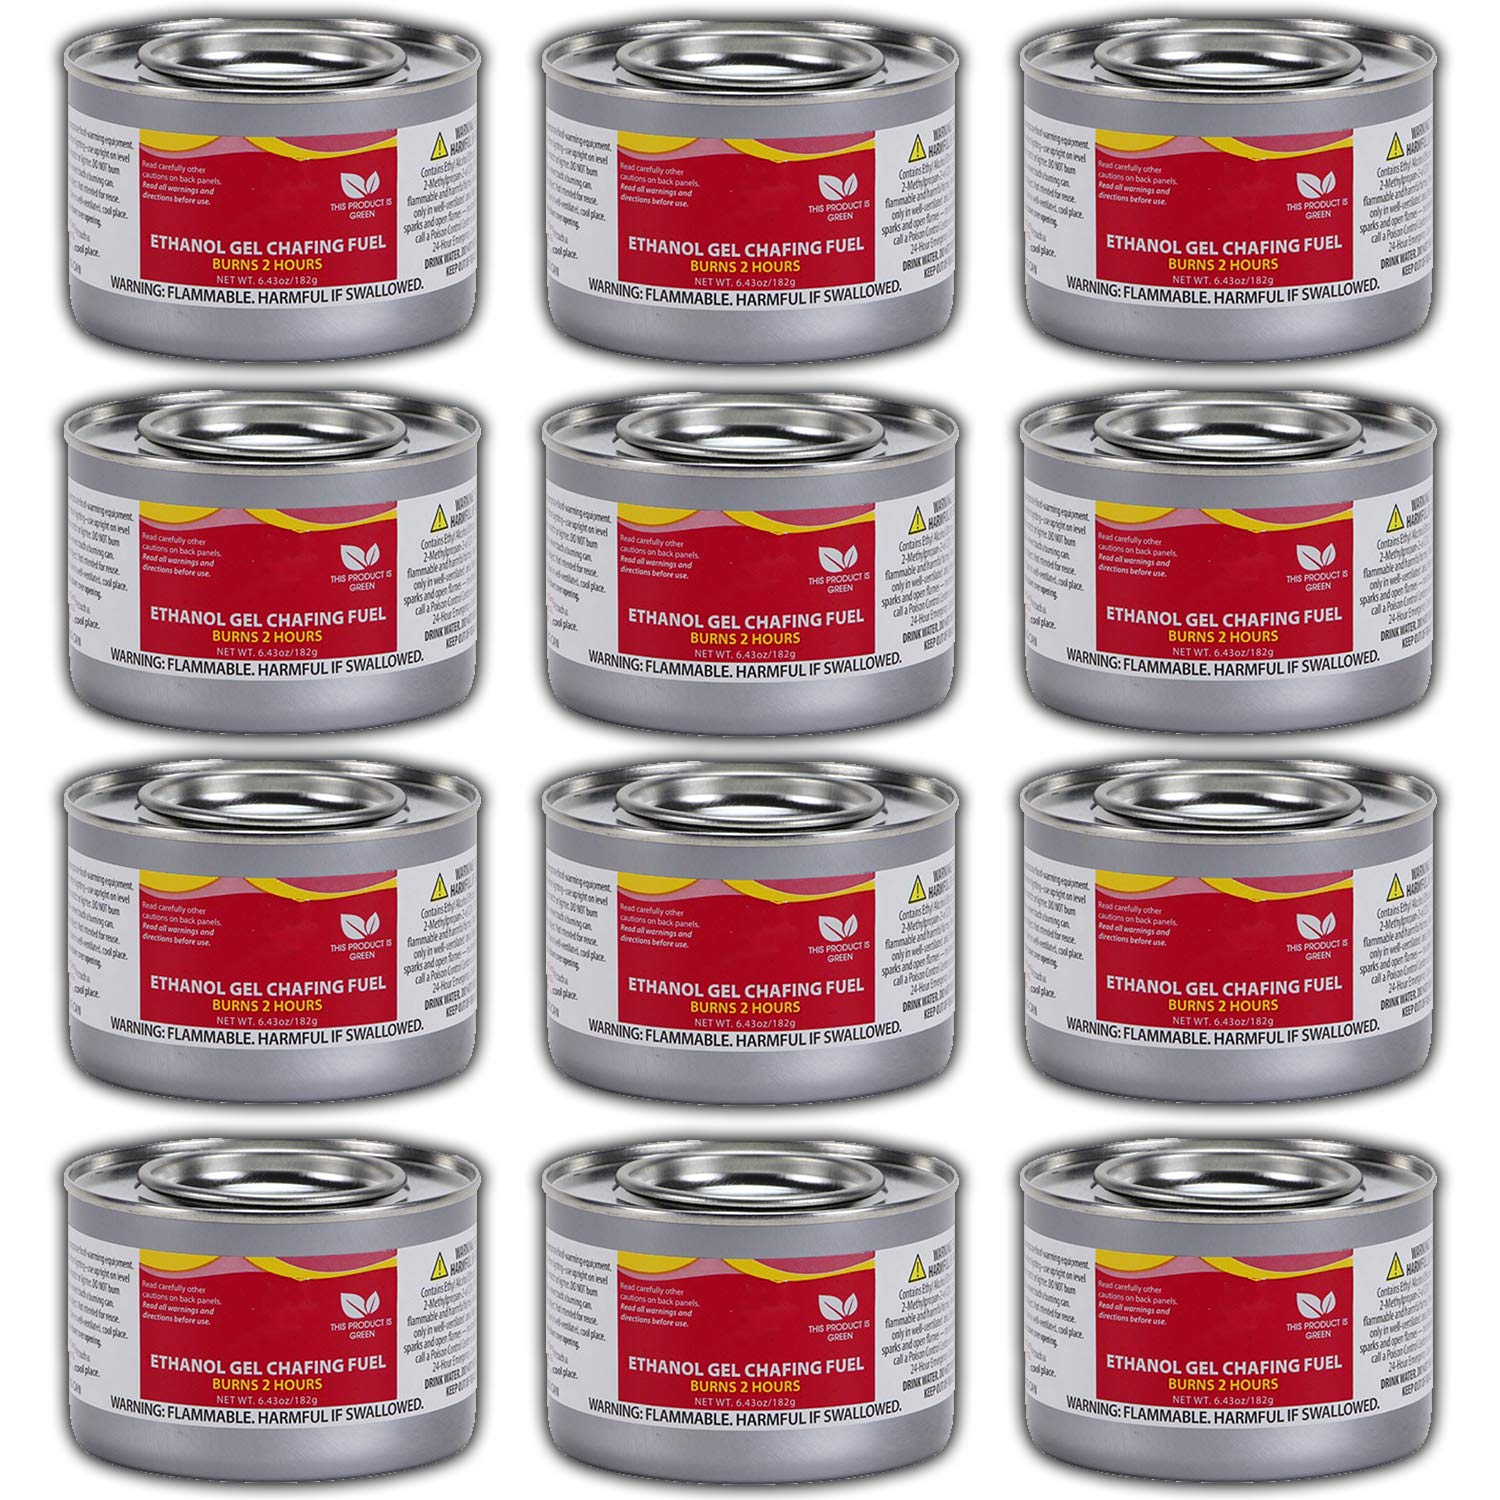 Chafing Dish Fuel Cans - Includes 12 Ethanol Gel Chafing Fuels, Burns for 2 Hours (6.43 OZ) for your Cooking, Food Warming, Buffet and Parties.